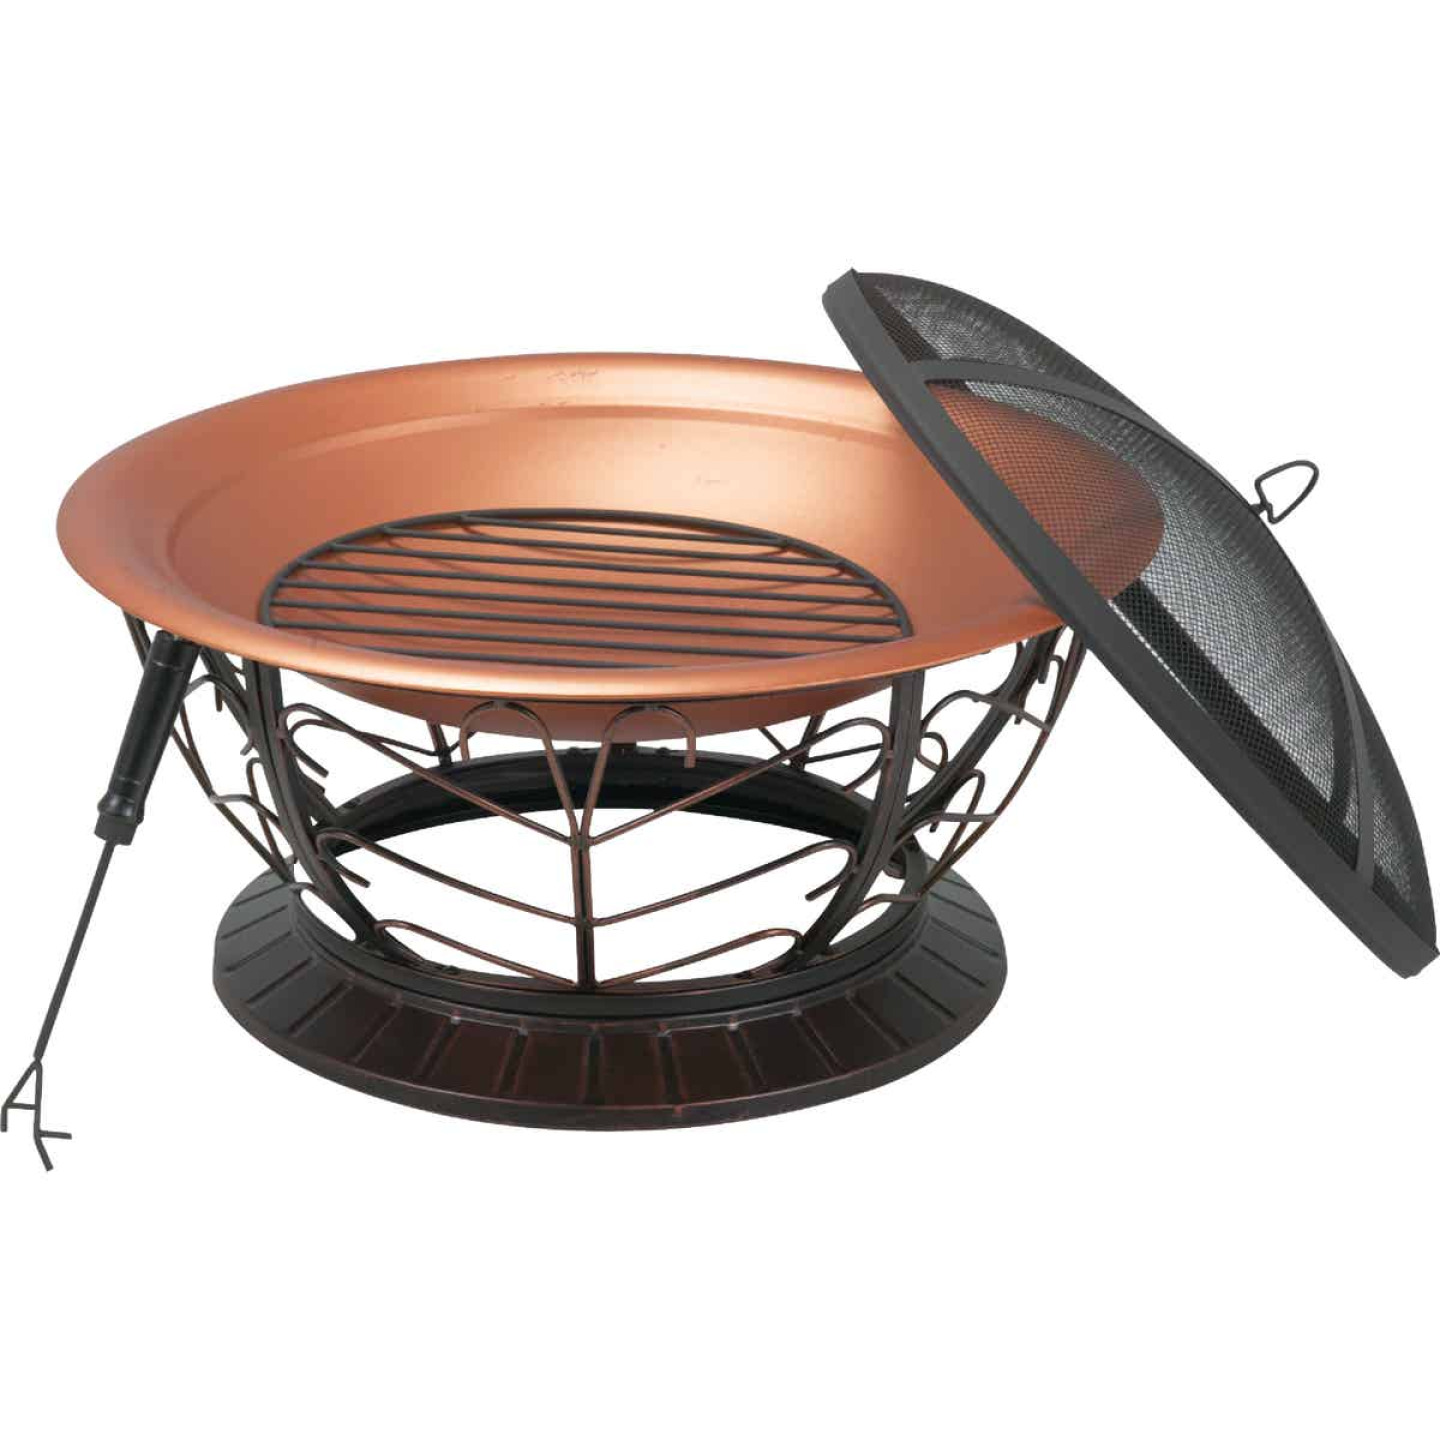 Outdoor Expressions 30 In. Coppertone Round Steel Fire Pit Image 7